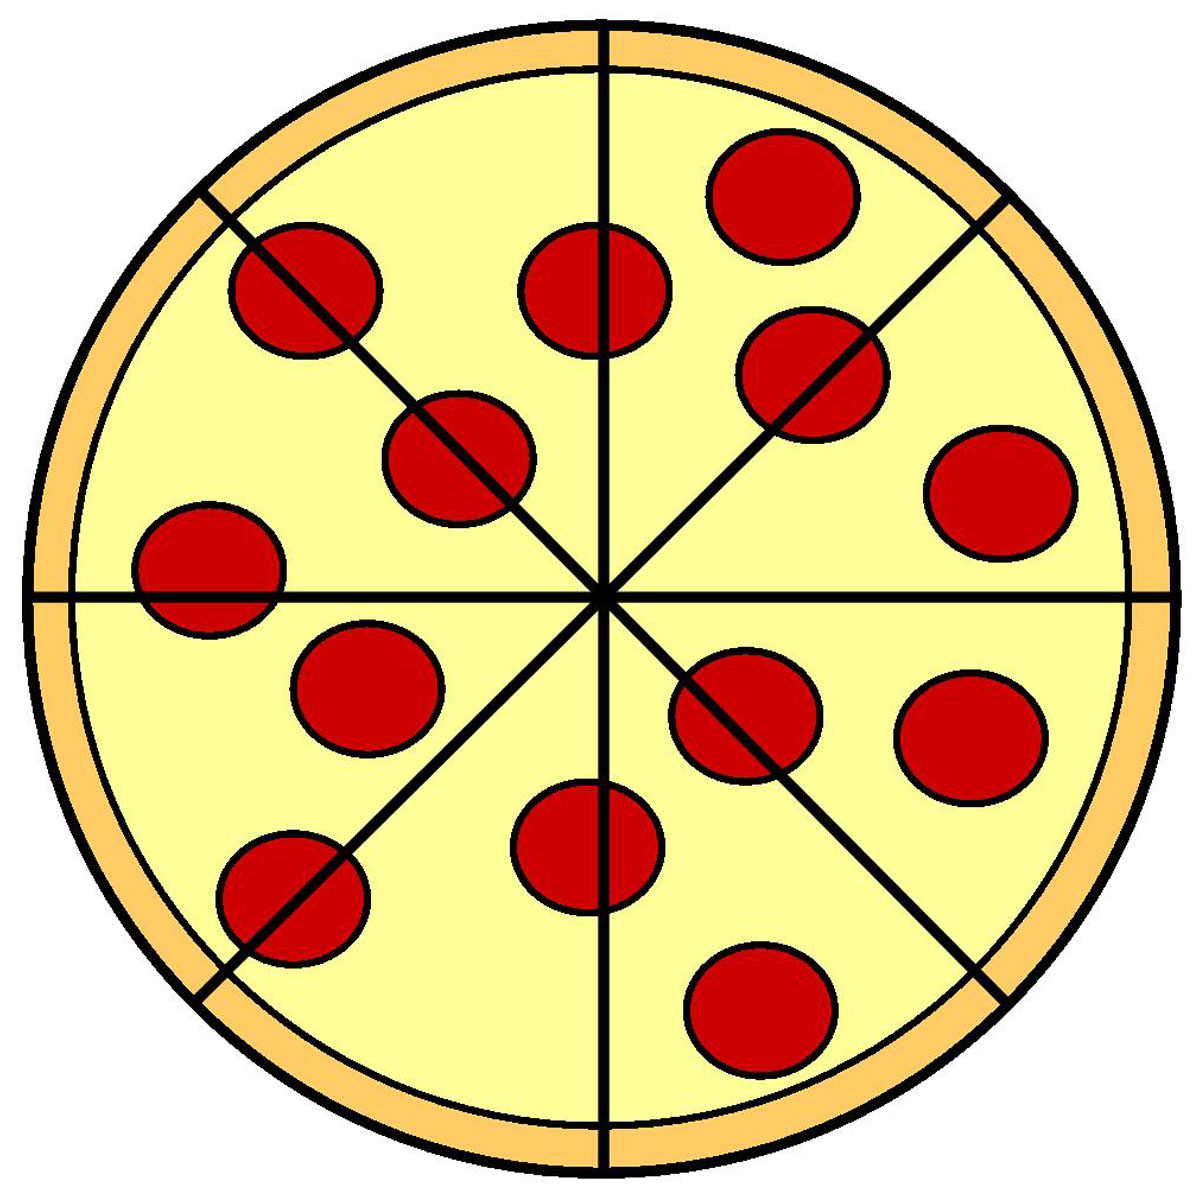 Whole Pizza Clipart | Clipart Panda - Free Clipart Images